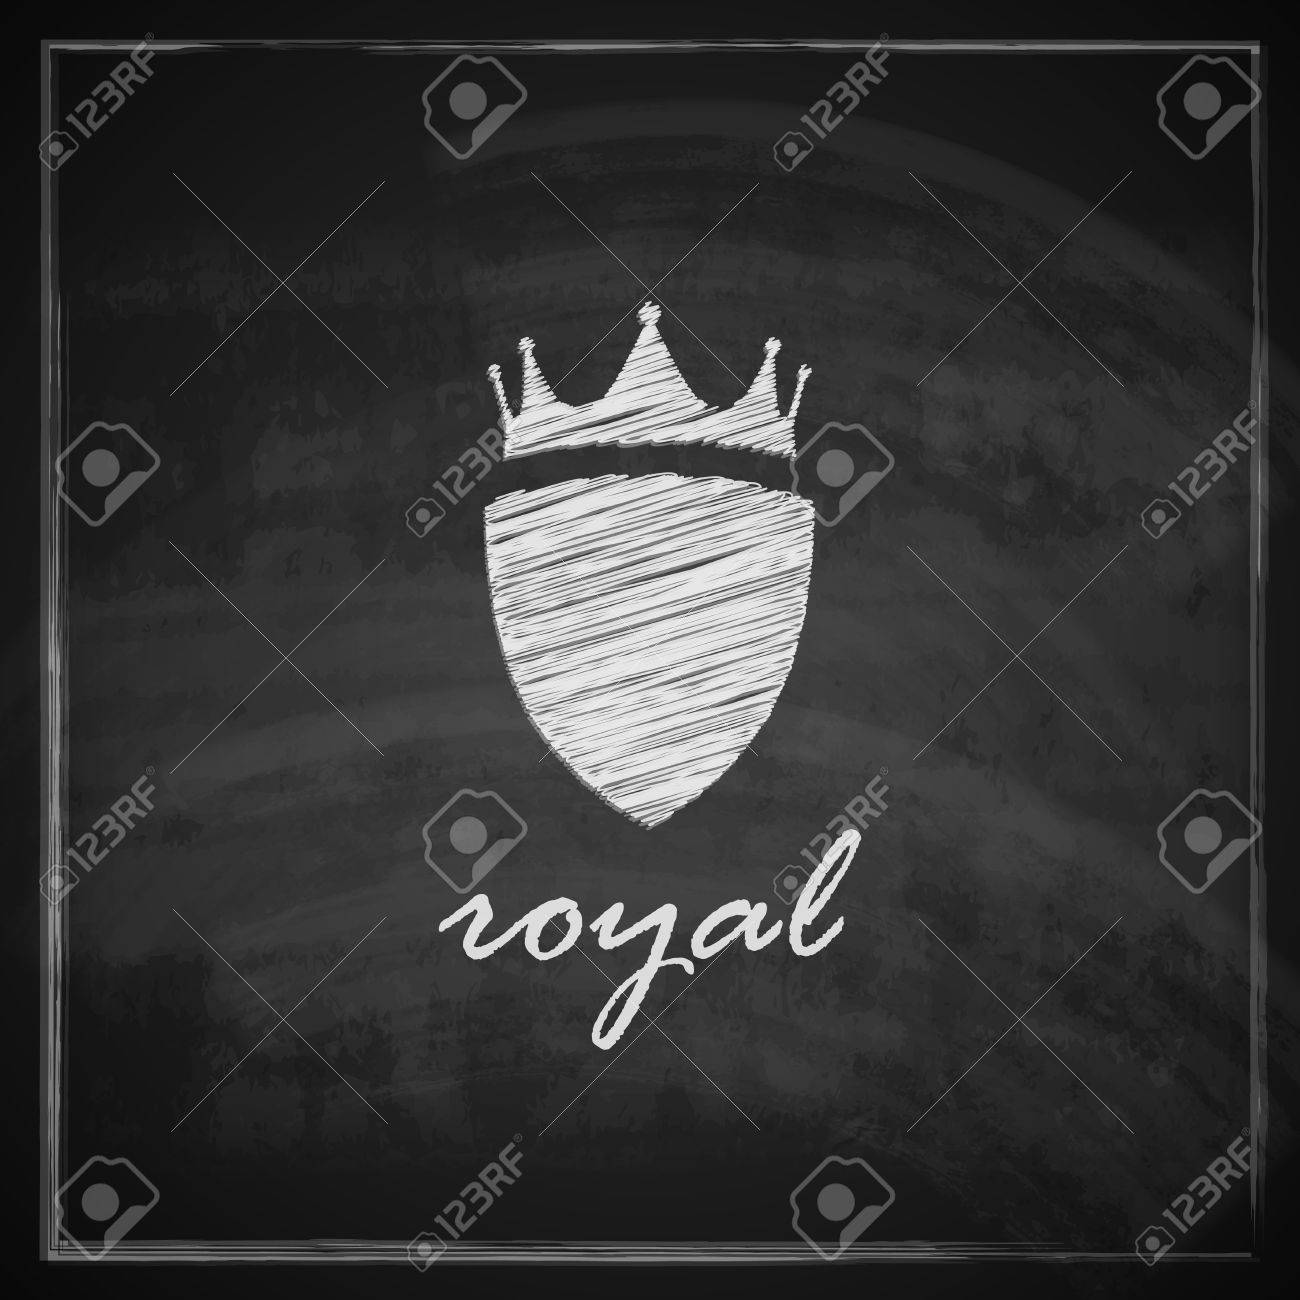 vintage illustration with crown and shield on blackboard background Stock Vector - 26195887